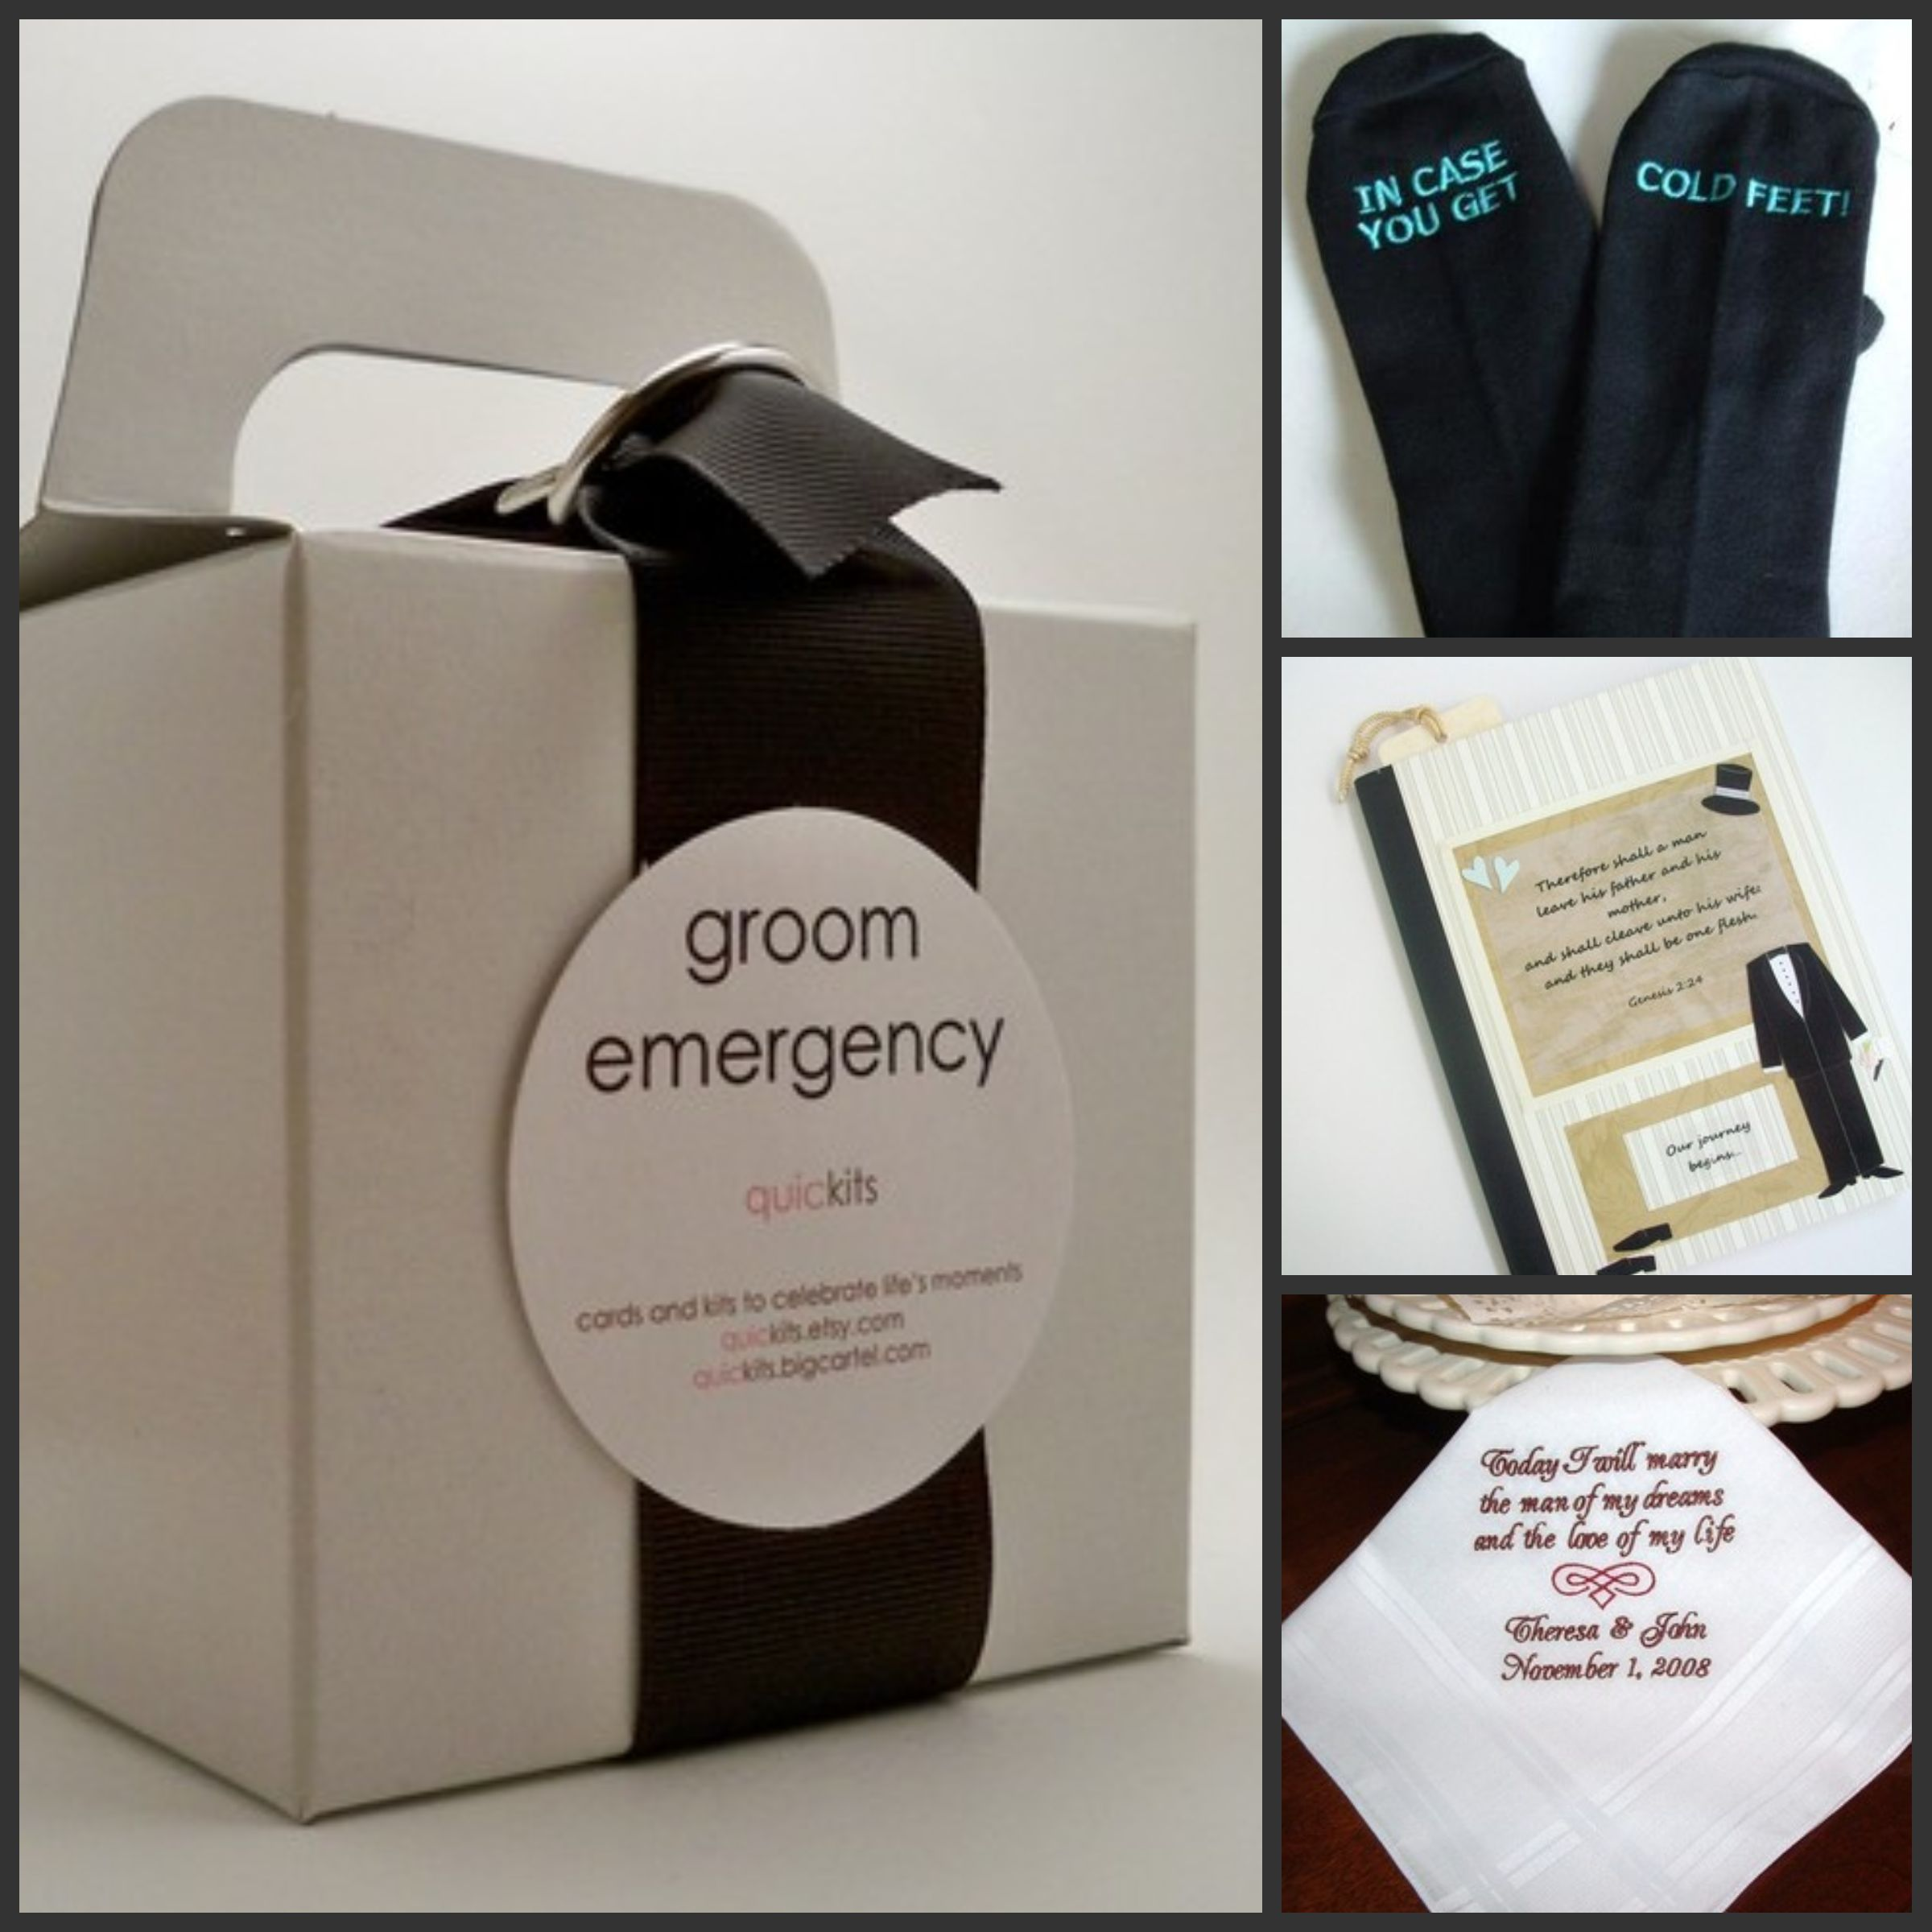 Sentimental Gift For Groom On Wedding Day : personal gifts for your groom clockwise from left groom emergency kit ...